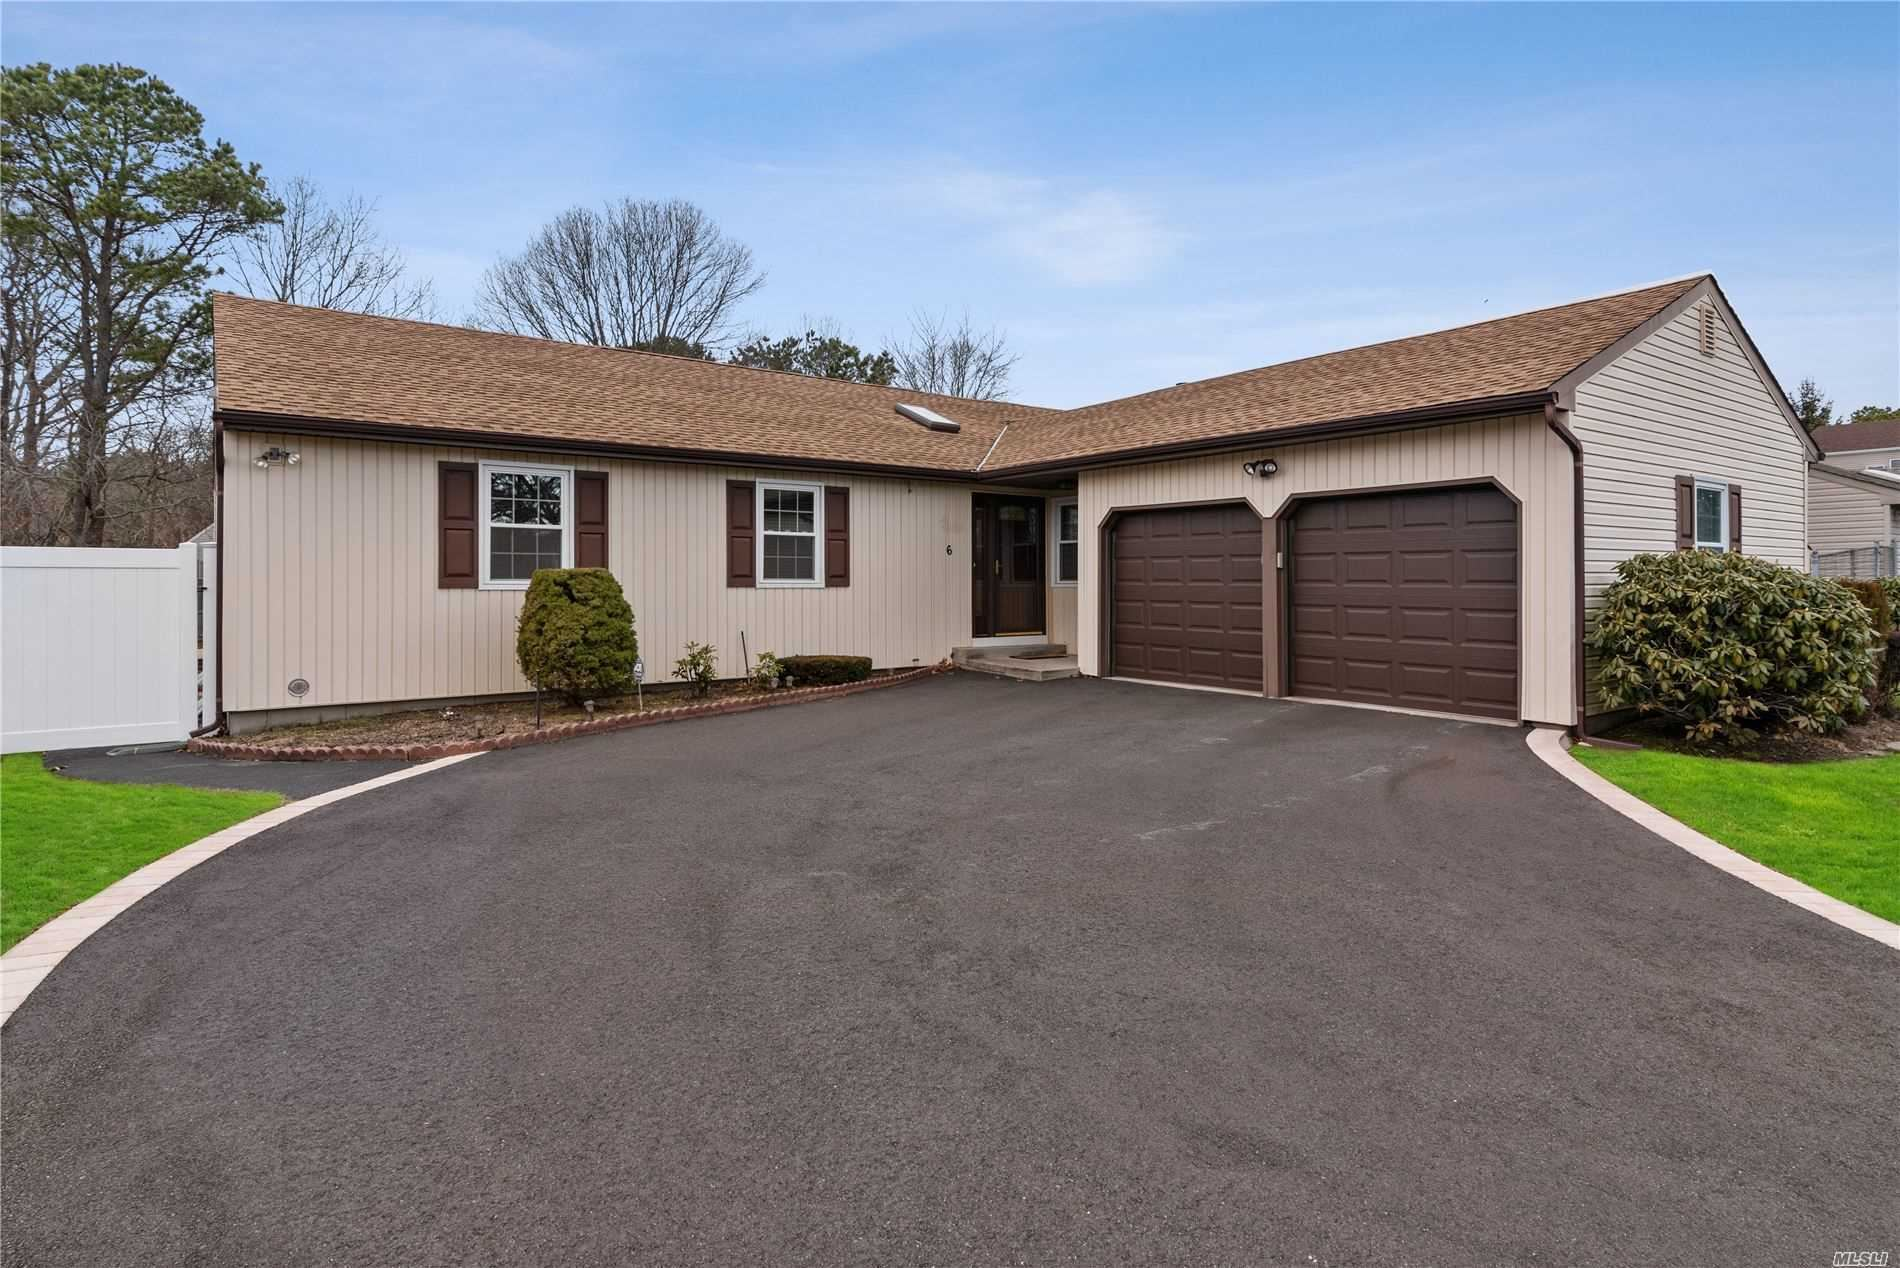 6 Apple Blossom Lane, Patchogue, NY 11772 - MLS#: 3189961